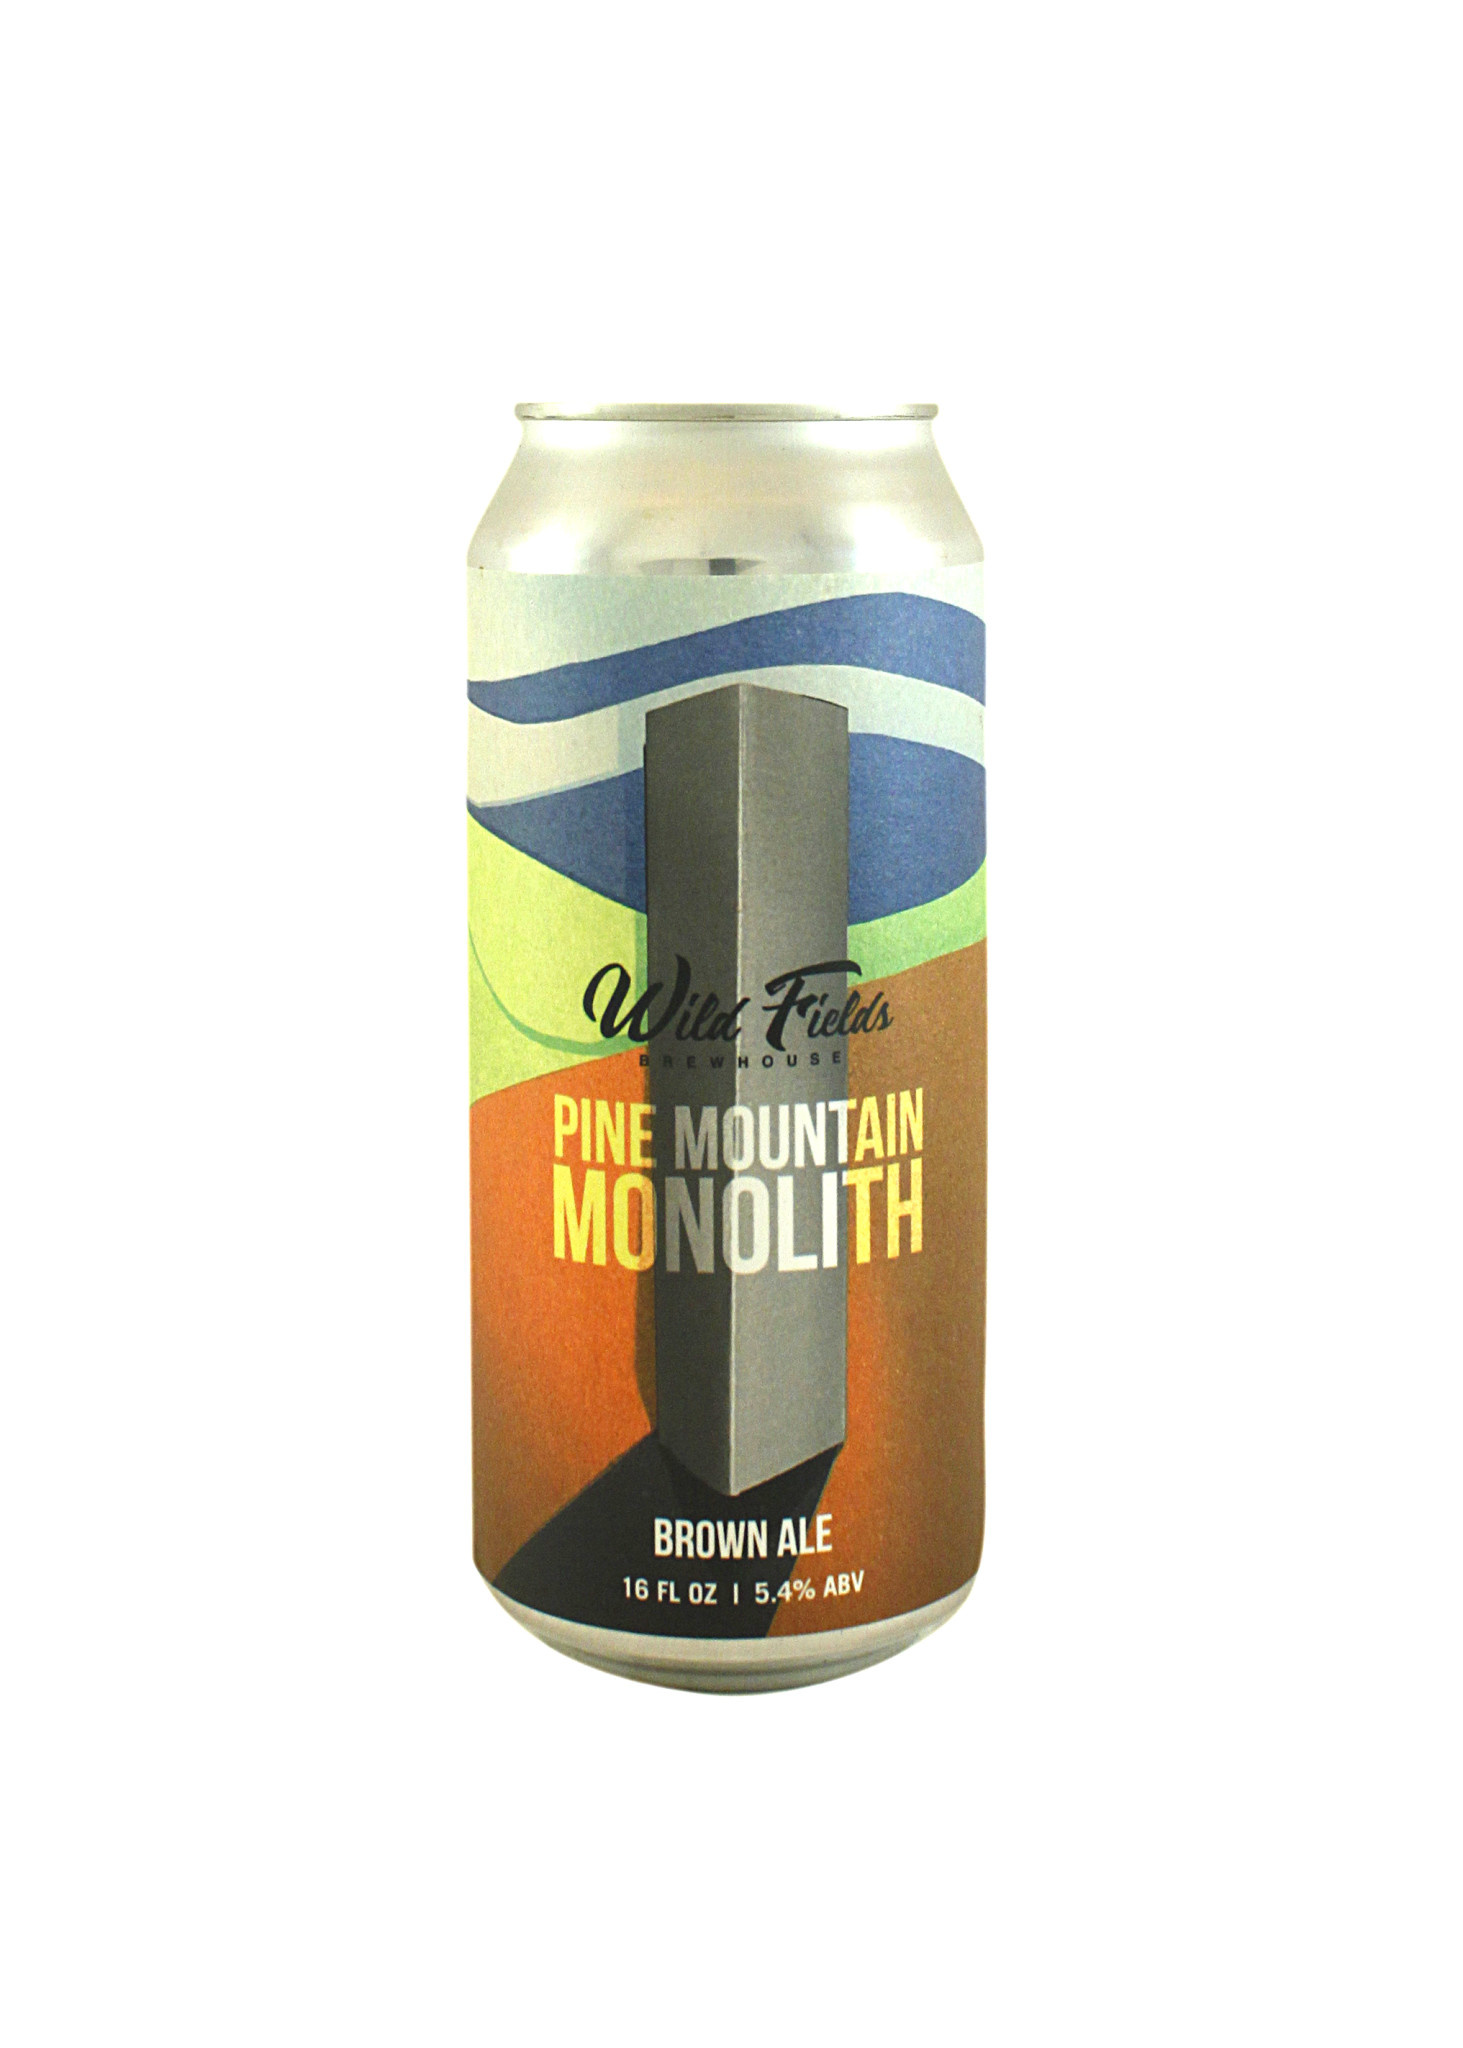 """Wild Fields Brewhouse """"Pine Mountain Monolith"""" Brown Ale 16oz. can - Atascadero, CA"""